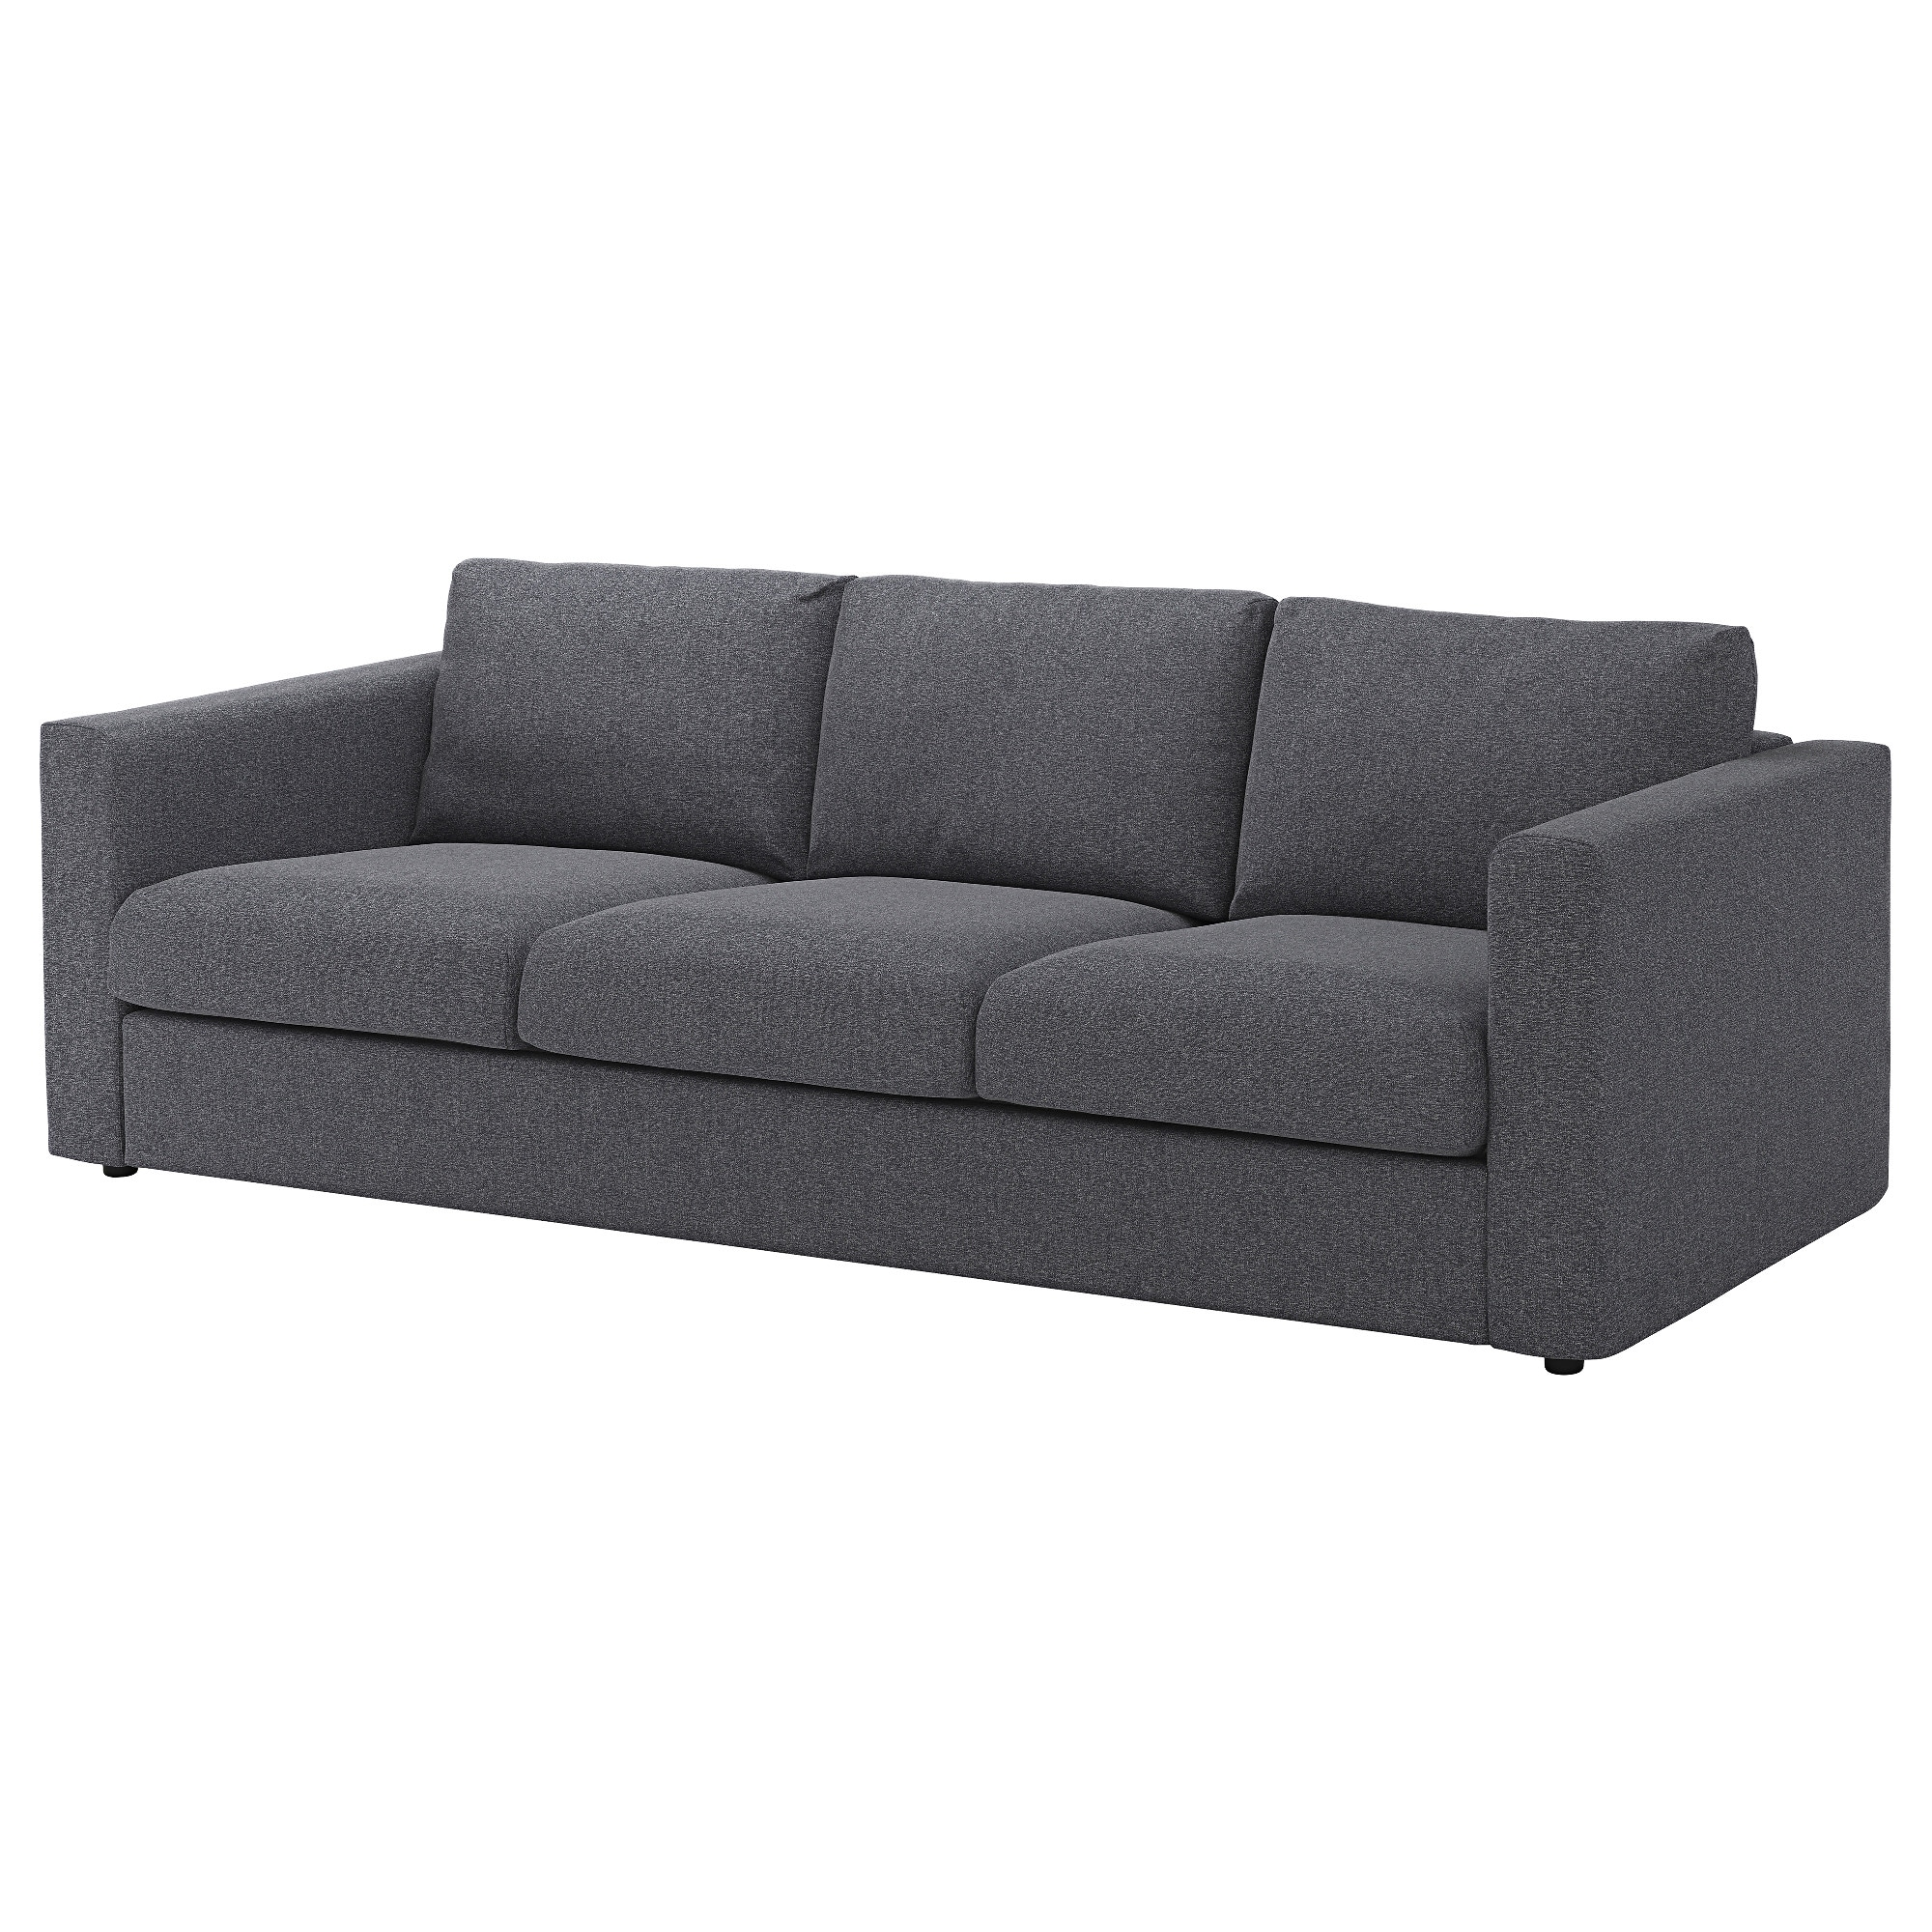 vimle sofa gunnared medium gray. fabric sofas  modern  contemporary  ikea